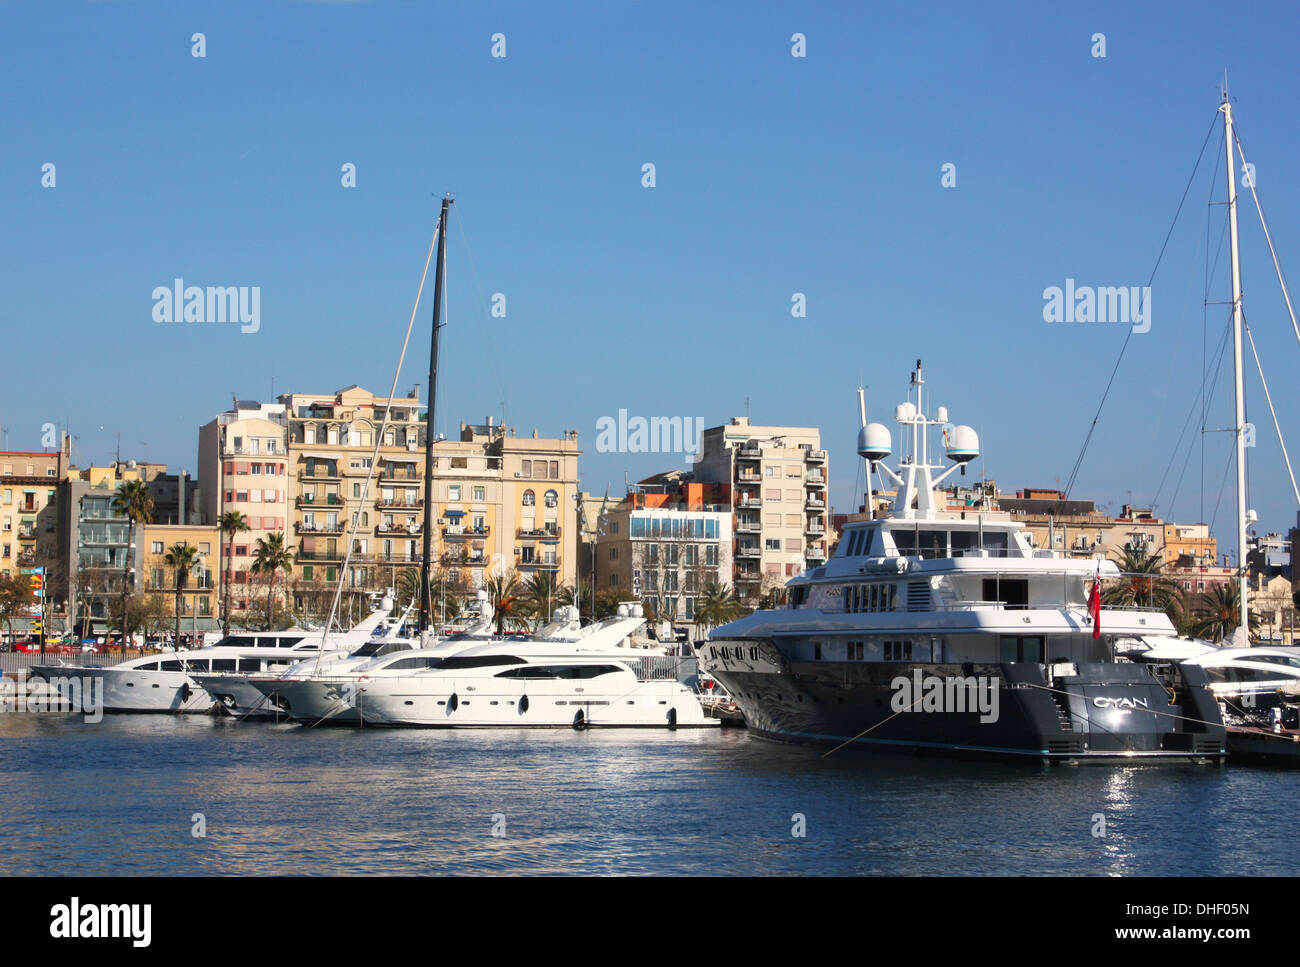 Boats in Barcelona, Spain Stock Photo